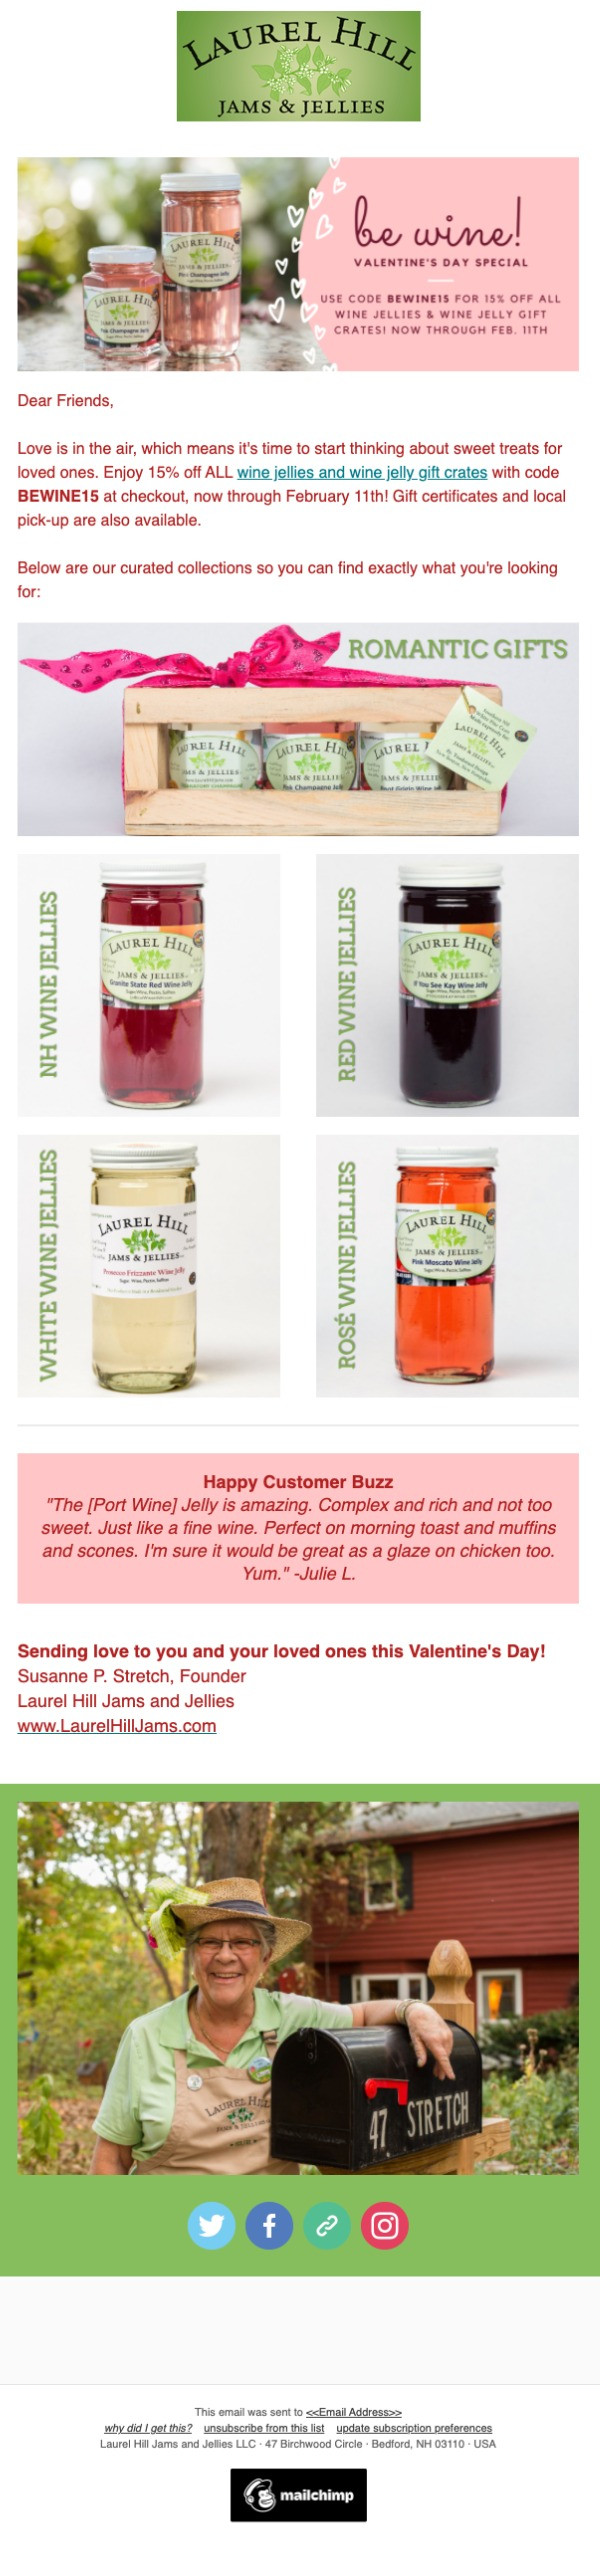 Laurel Hill Jams & Jellies Promotional Valentine's Day Email